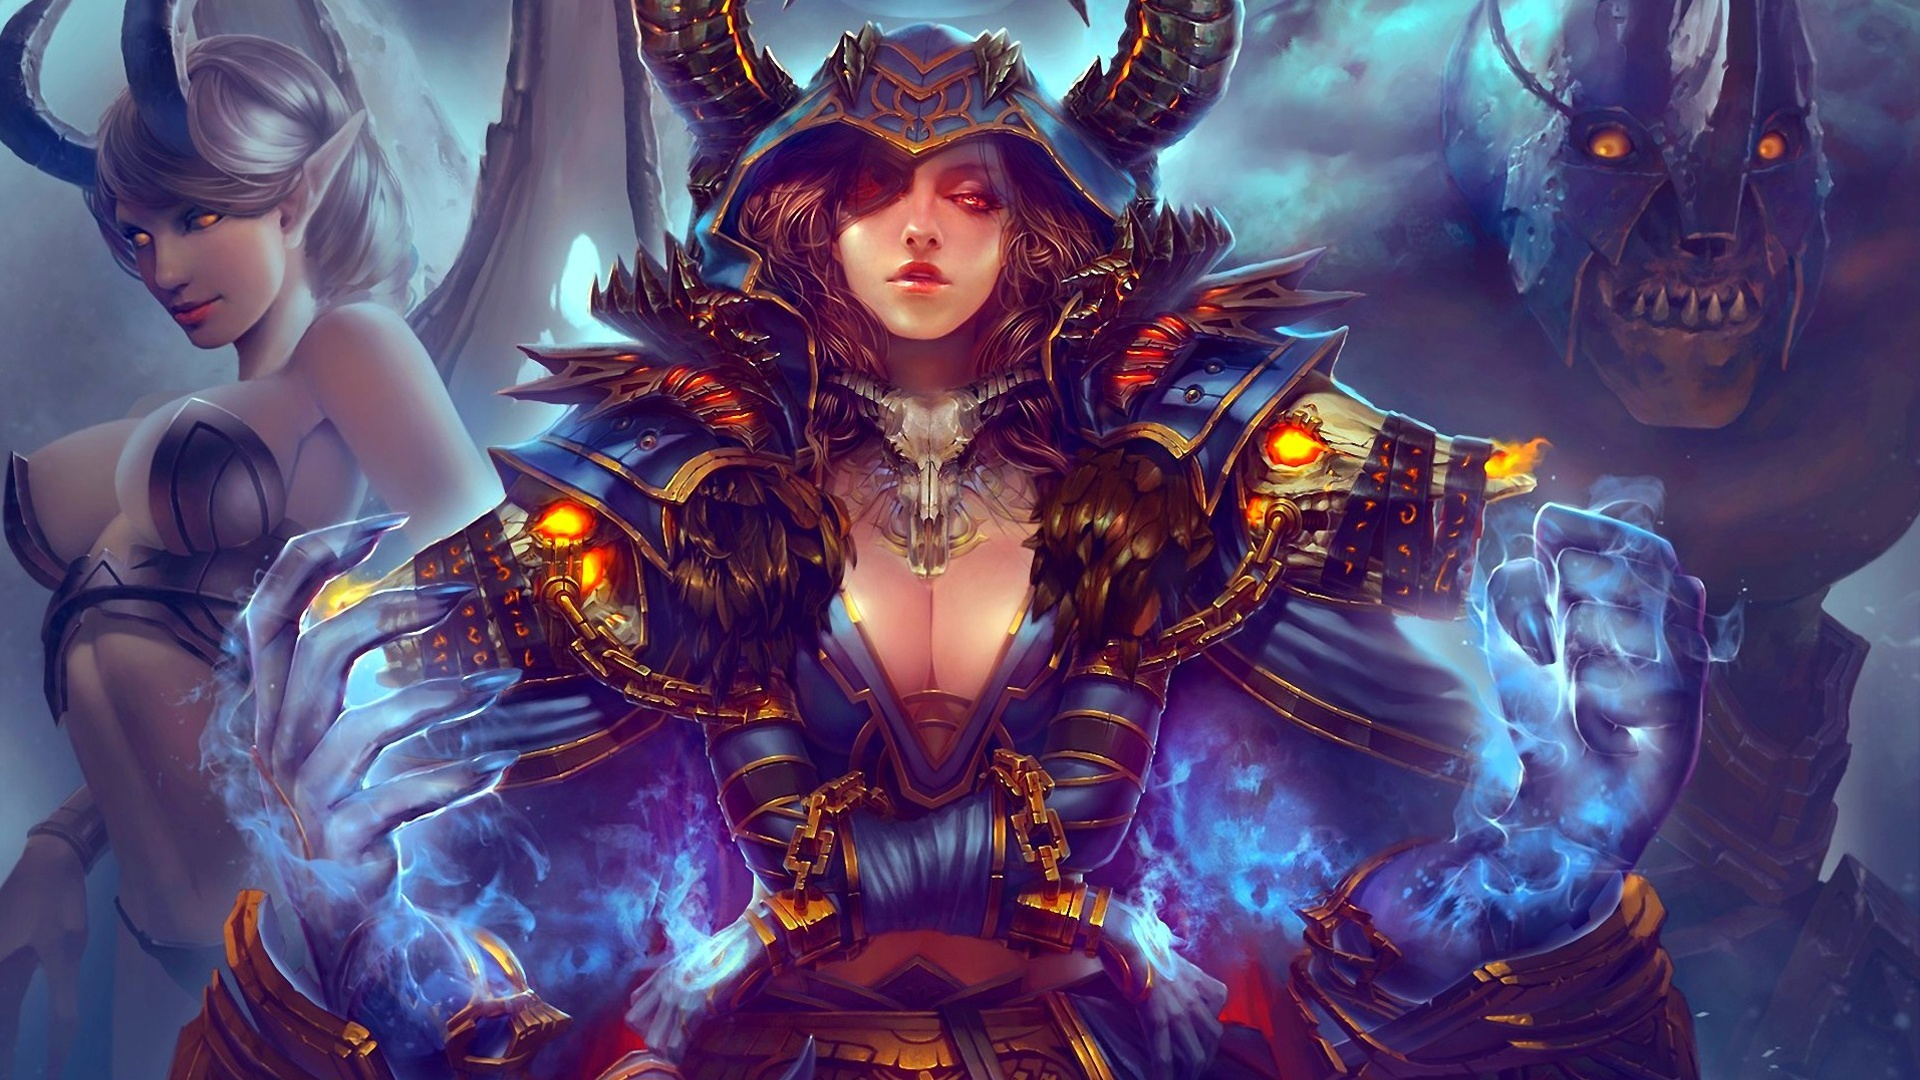 world de warcraft, peinture d'art, fille, monstre fonds d'écran